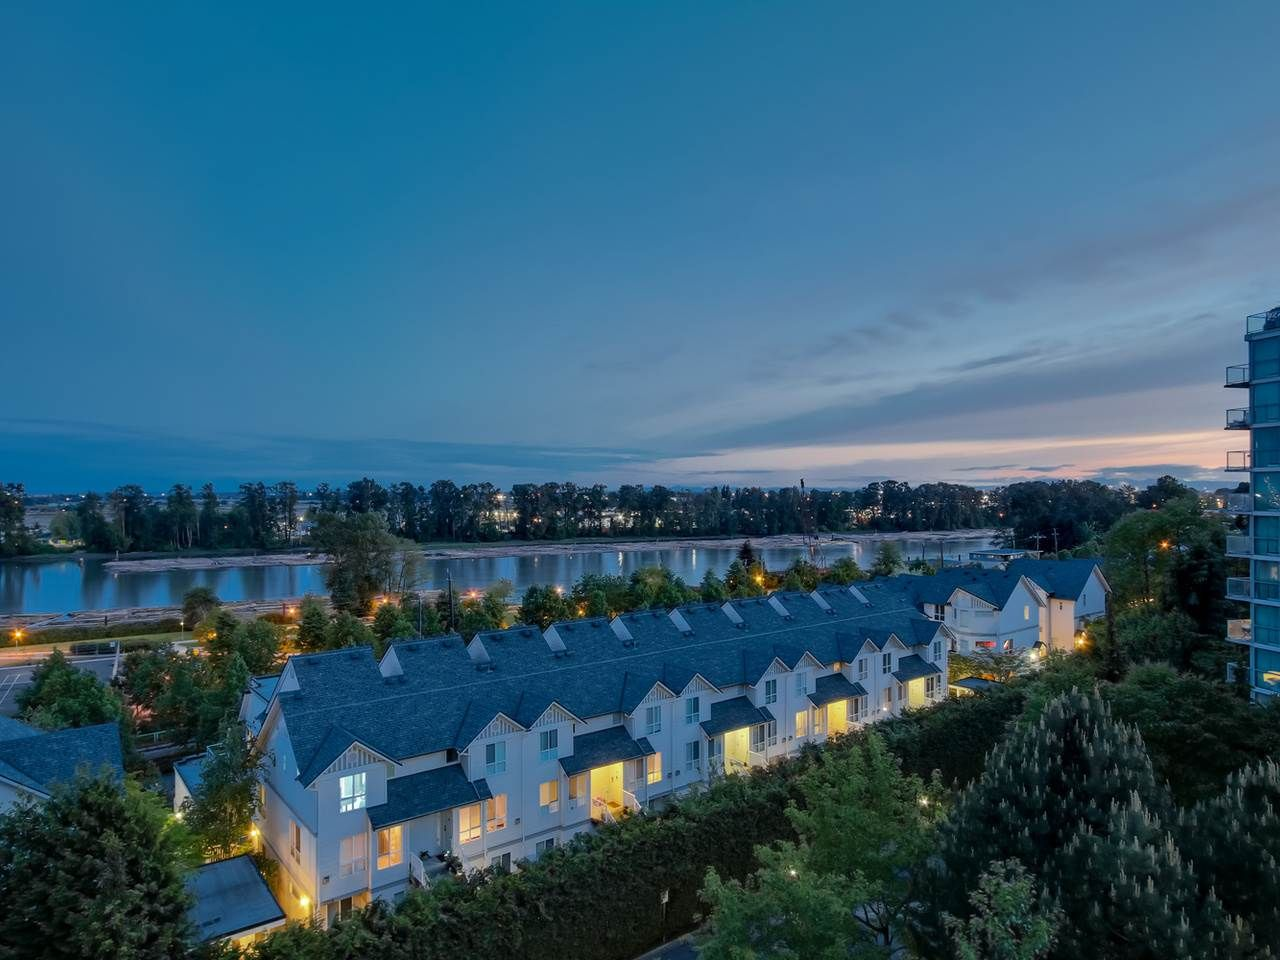 """Main Photo: 803 2763 CHANDLERY Place in Vancouver: Fraserview VE Condo for sale in """"RIVER DANCE"""" (Vancouver East)  : MLS®# R2067616"""